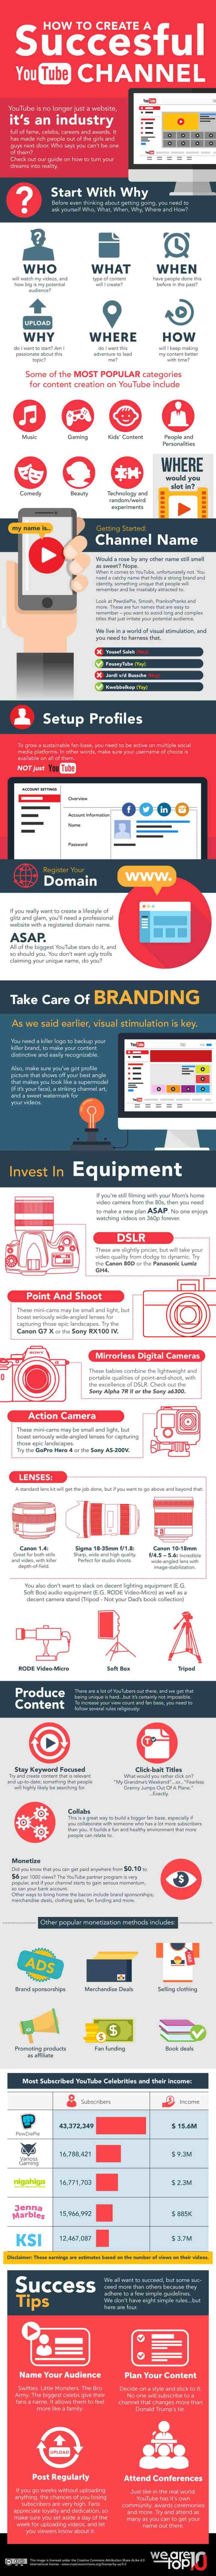 create-a-successful-youtube-channel-infographic